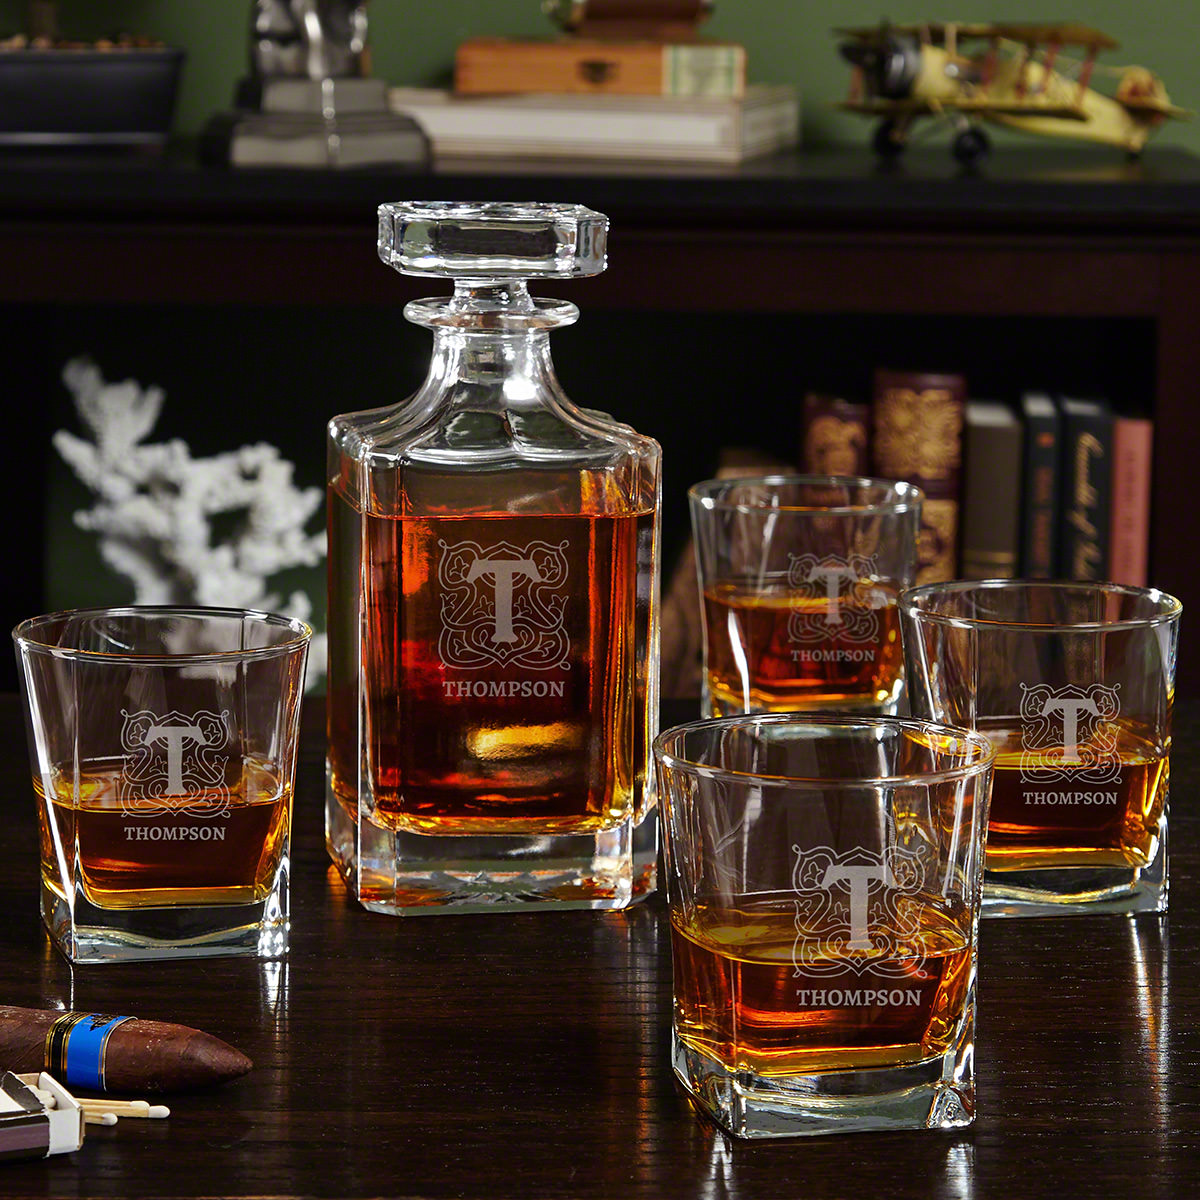 Brannon Personalized Whiskey Decanter Set with Carson Decanter and Square Rocks Glasses